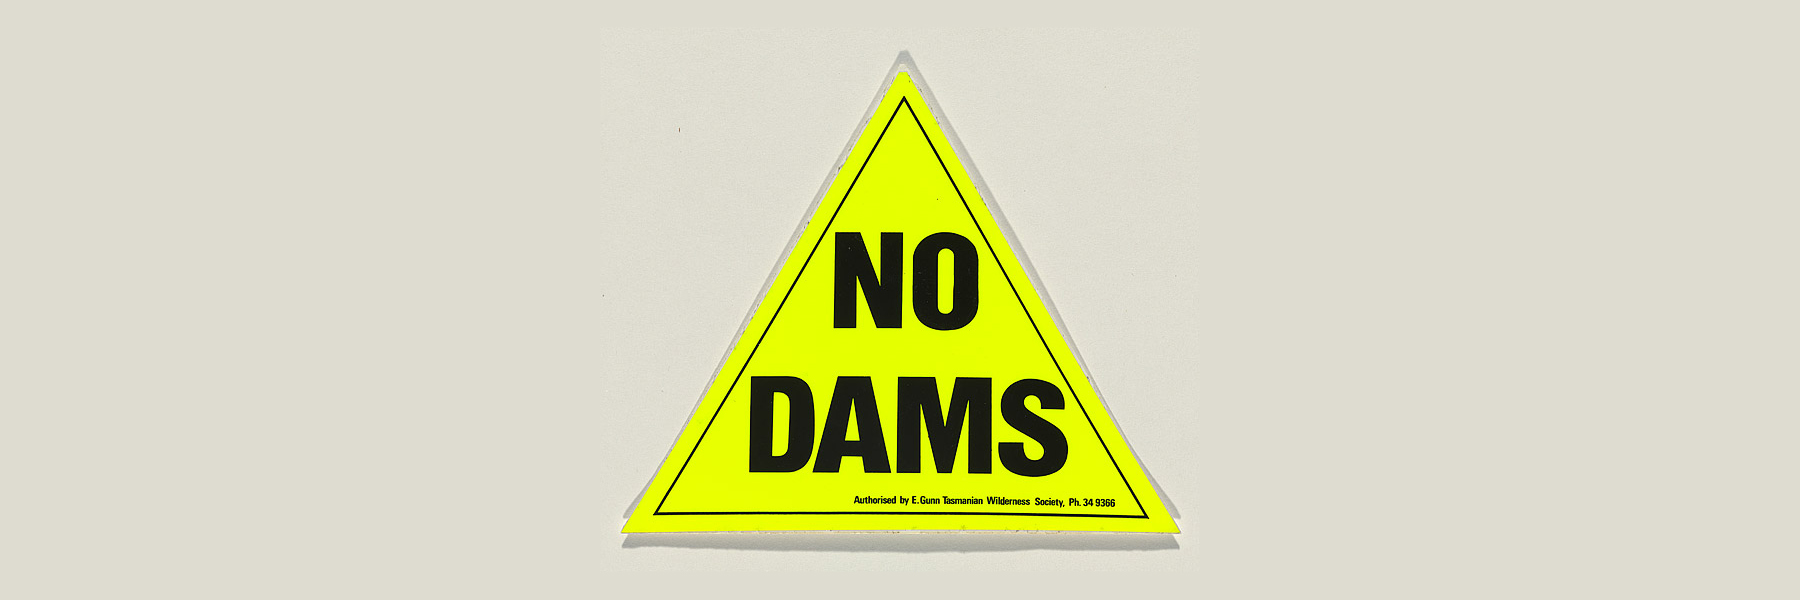 No Dams, The Tasmanian Wilderness Society